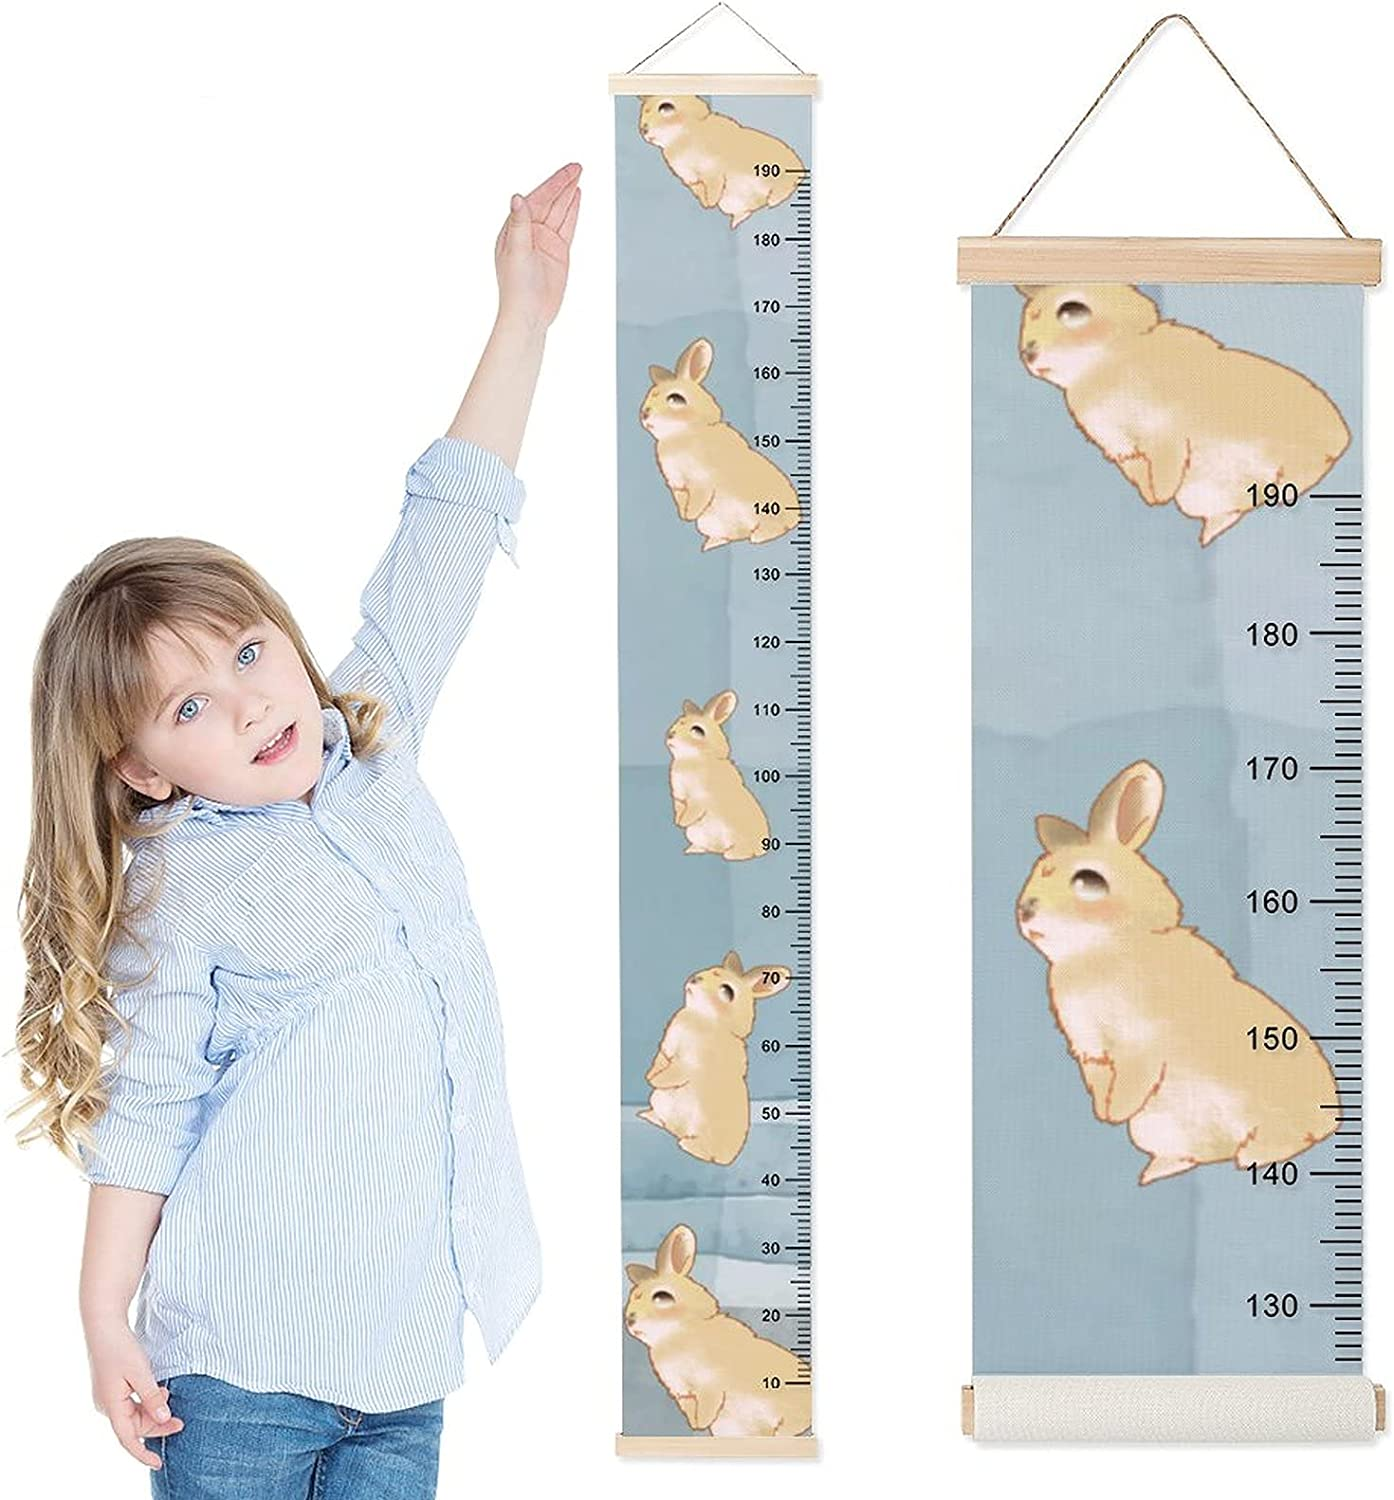 DKISEE Baby Growth Max 88% OFF Chart Child Ruler Over item handling Wall Hanging Height f